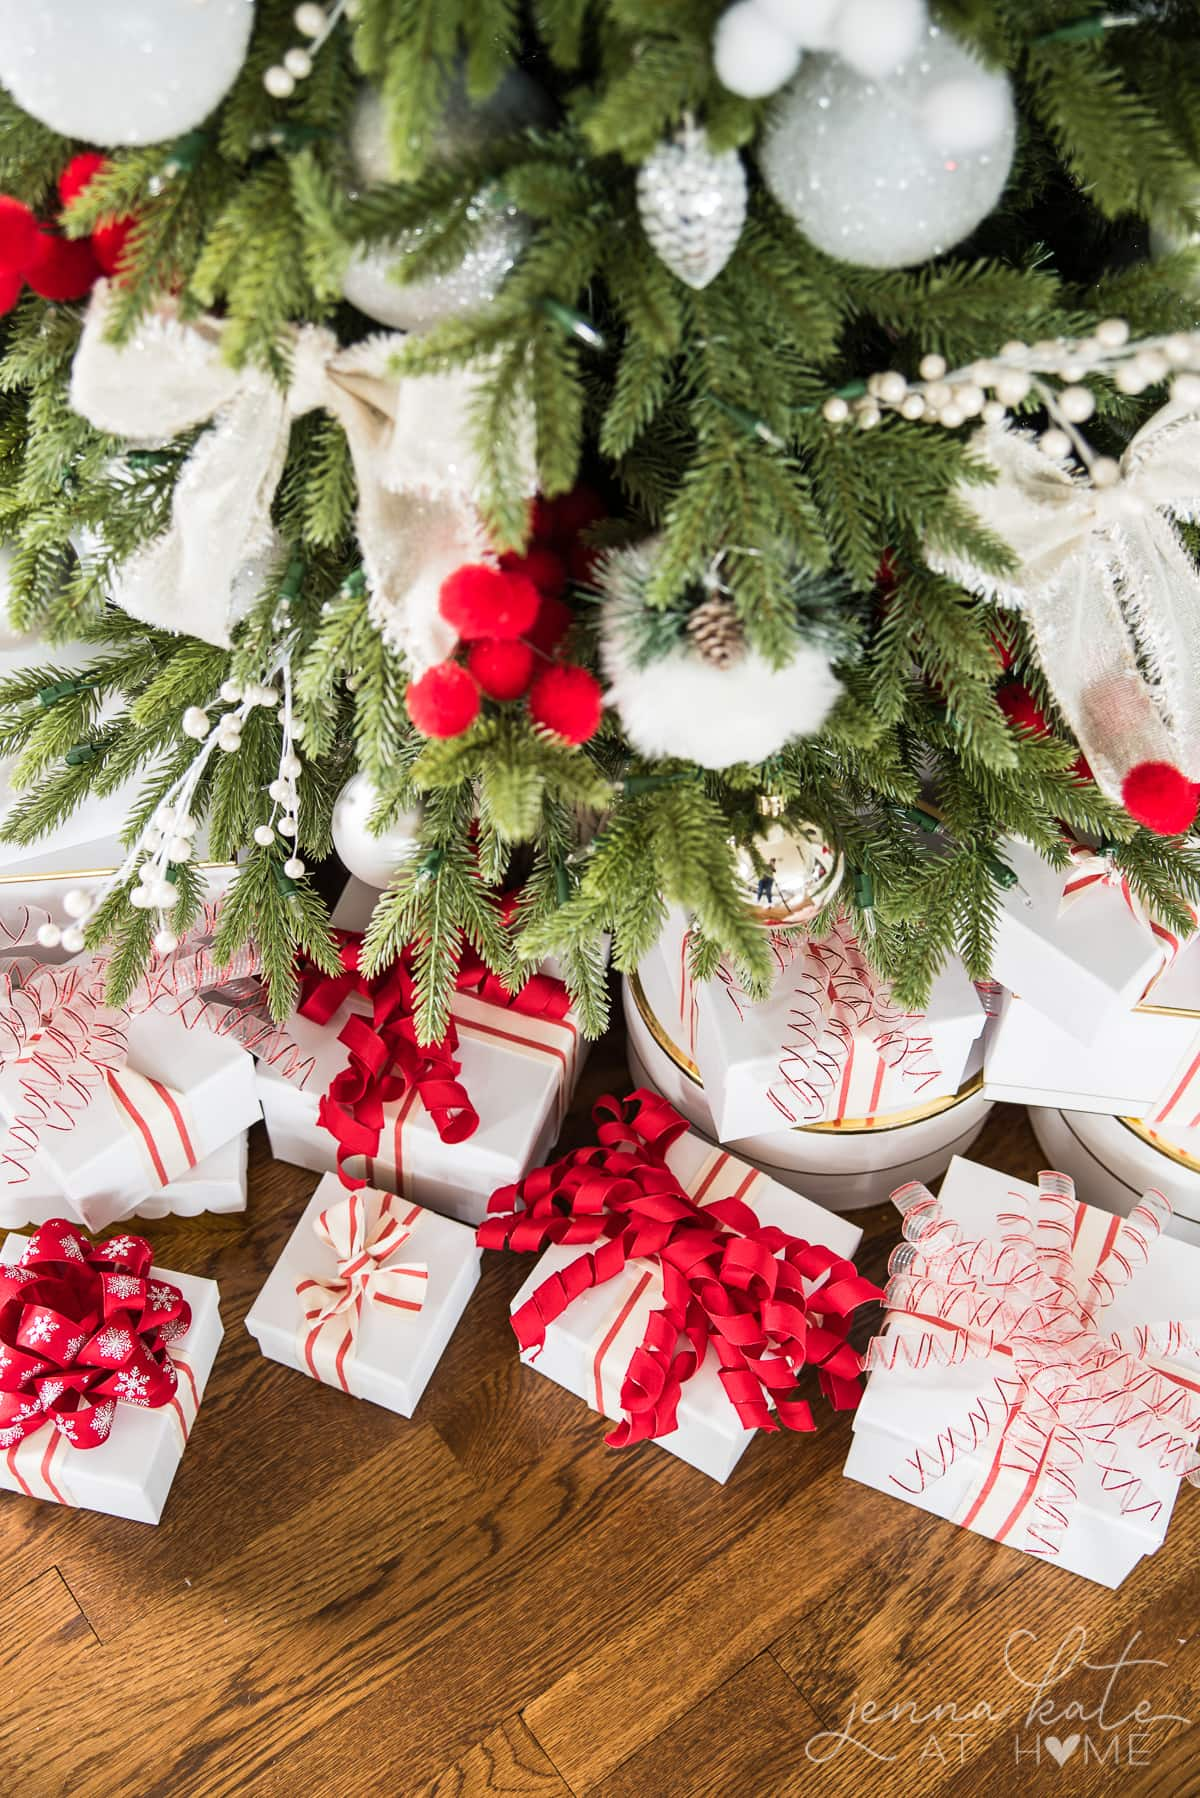 Coordinate tree ornaments with gift wrapping